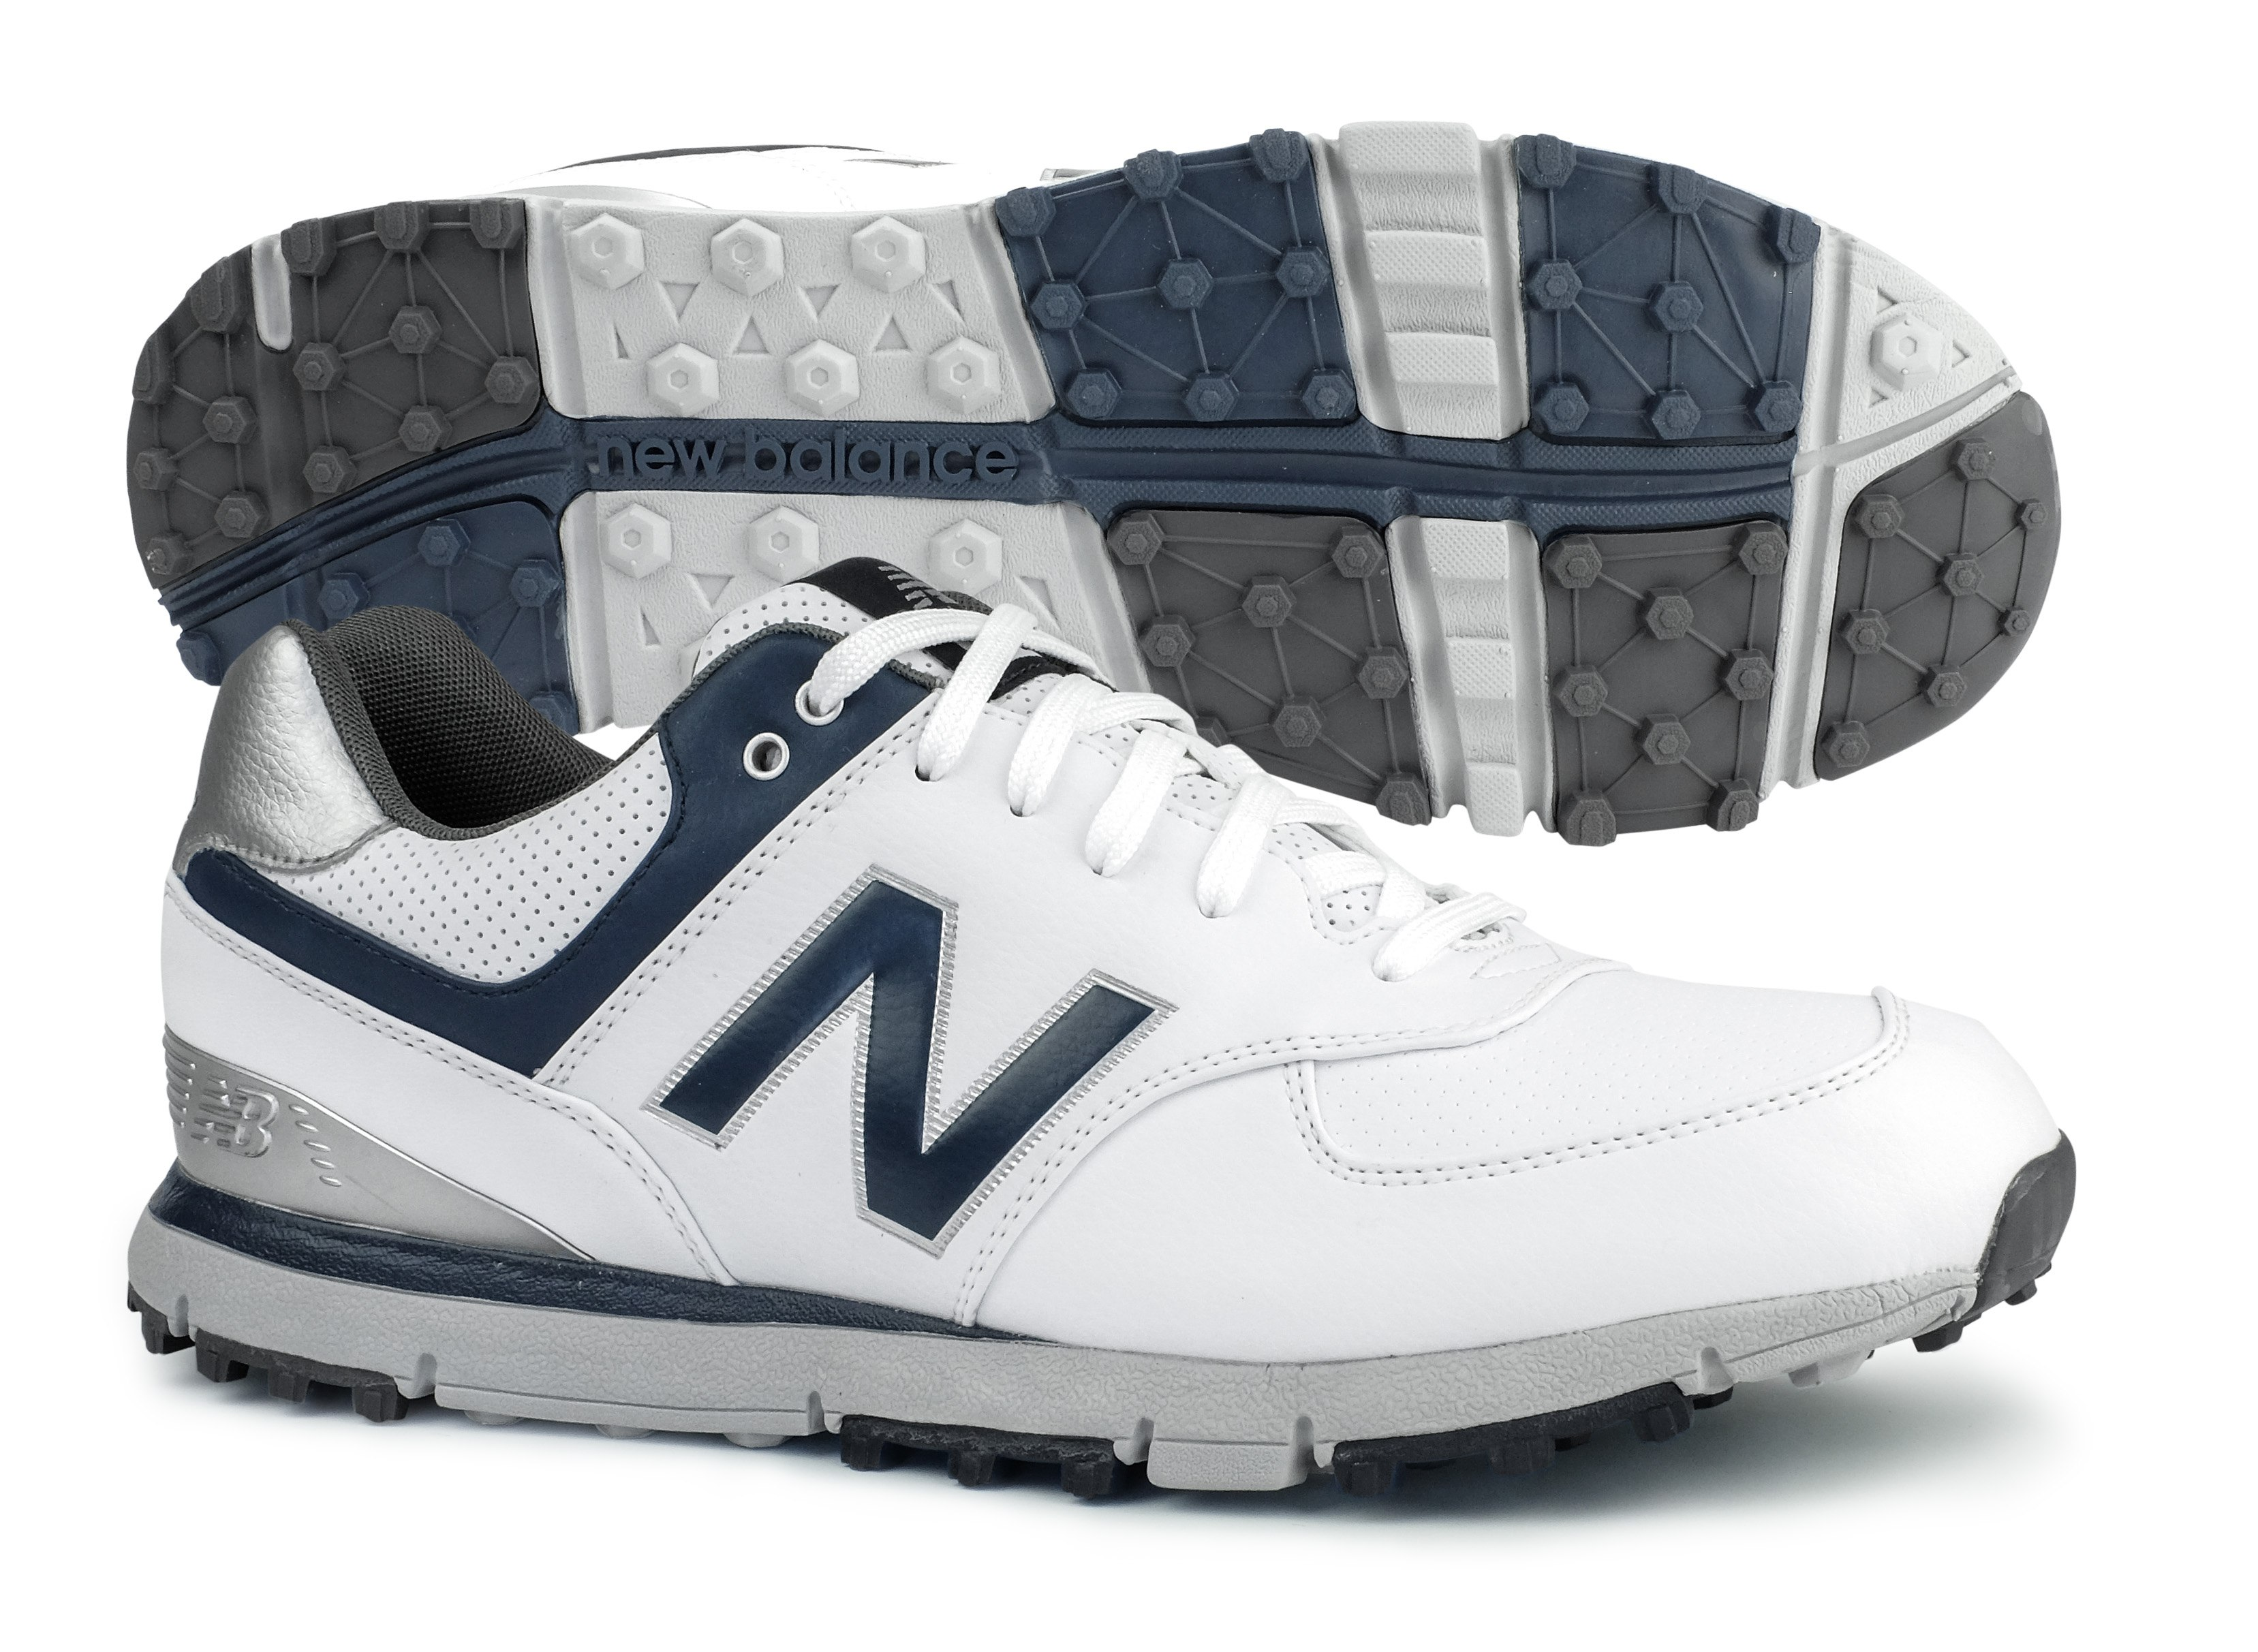 separation shoes 854fc 54832 New Balance Golf- NBG574 SL Shoes  OPEN BOX